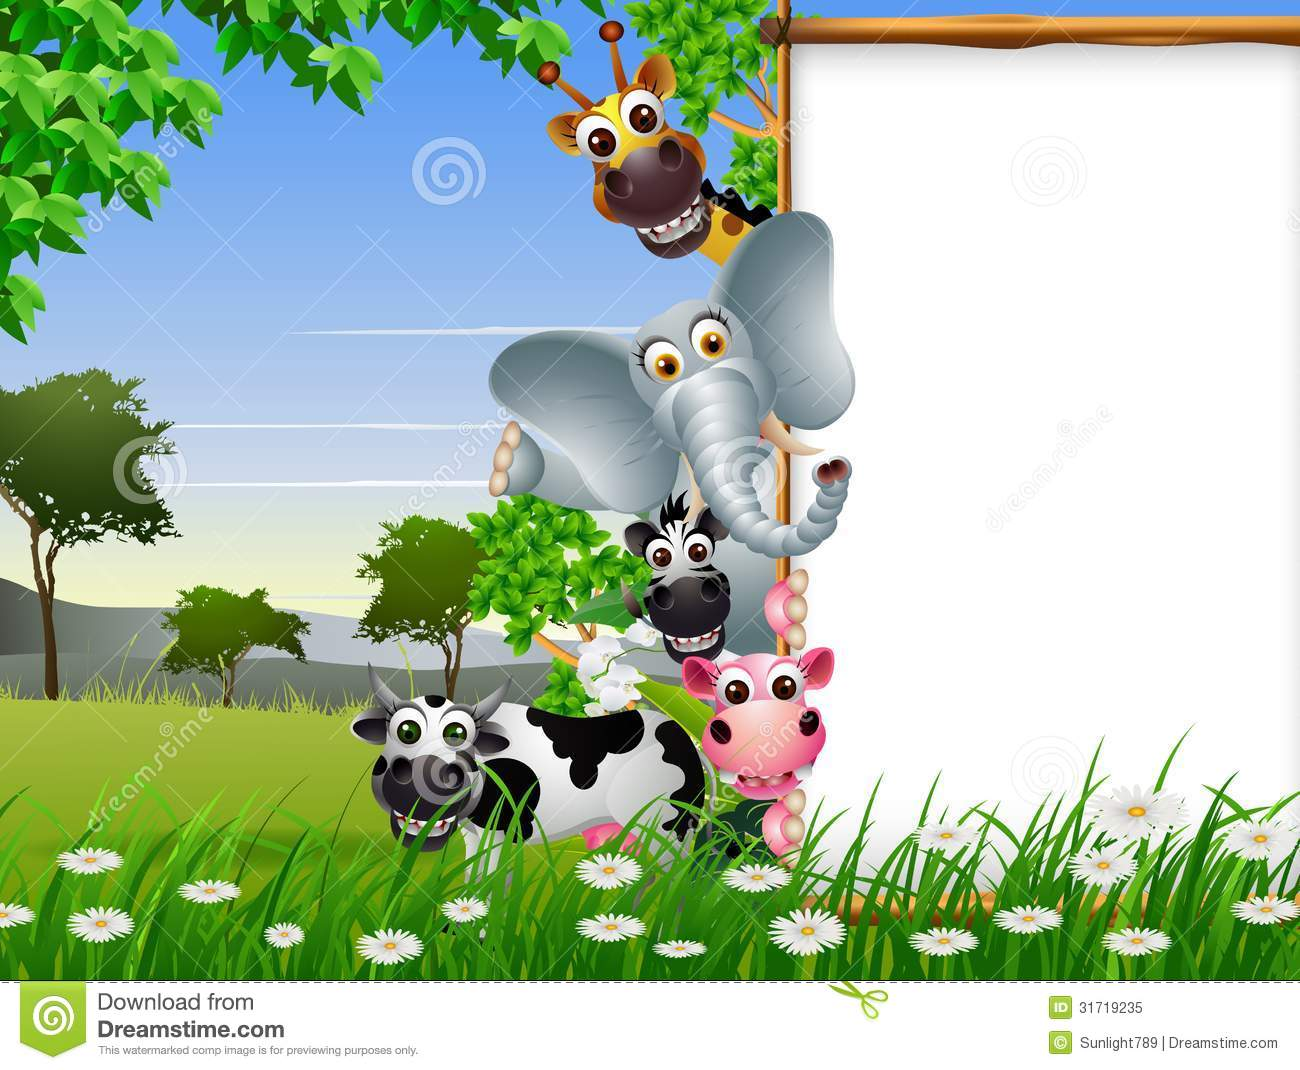 Jungle Animal Wallpaper Funny Animal Cartoon Collection With Blank Sign And